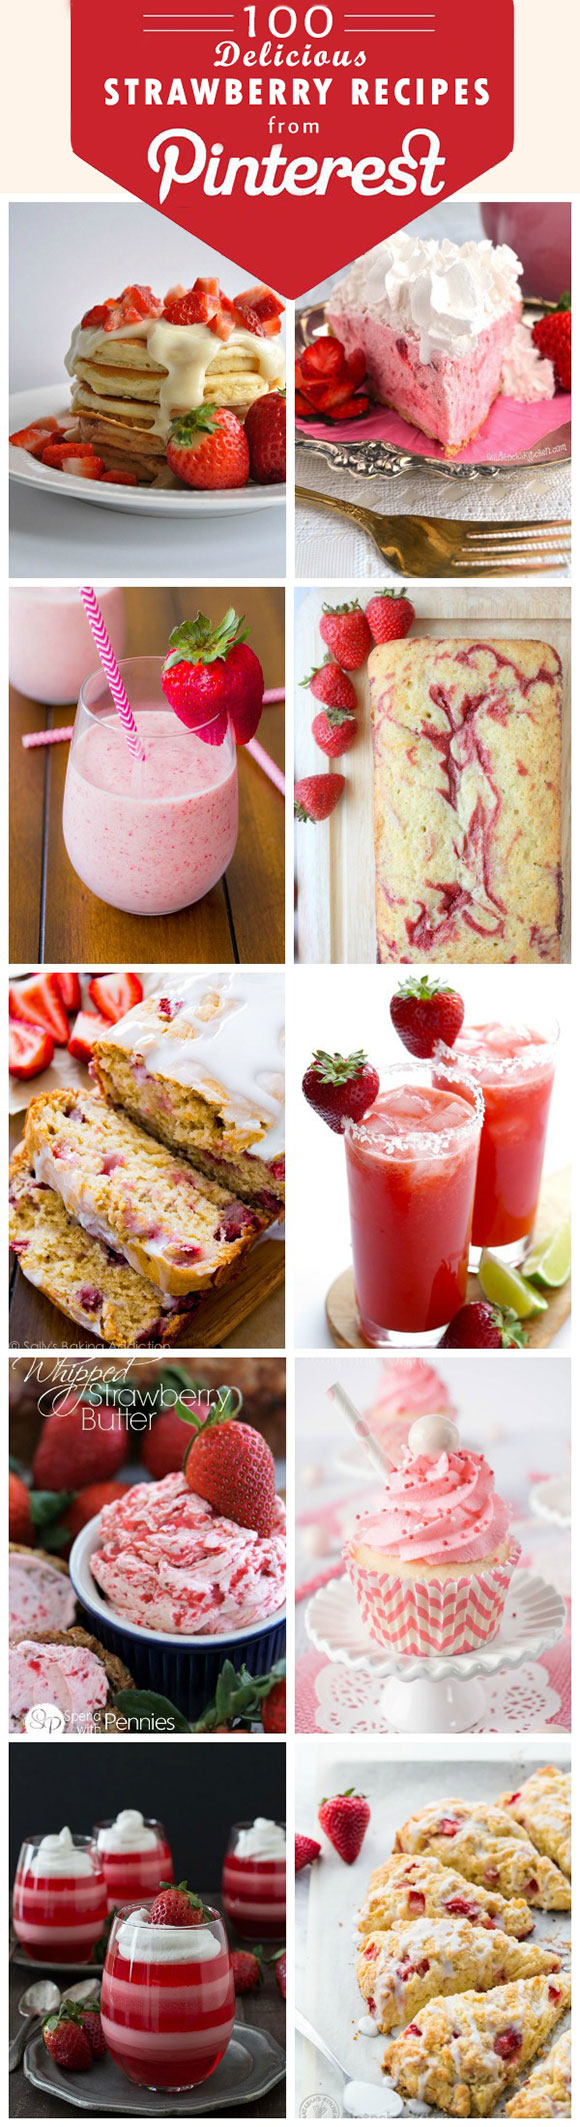 100 delicious straeberry recipes from Pinterest